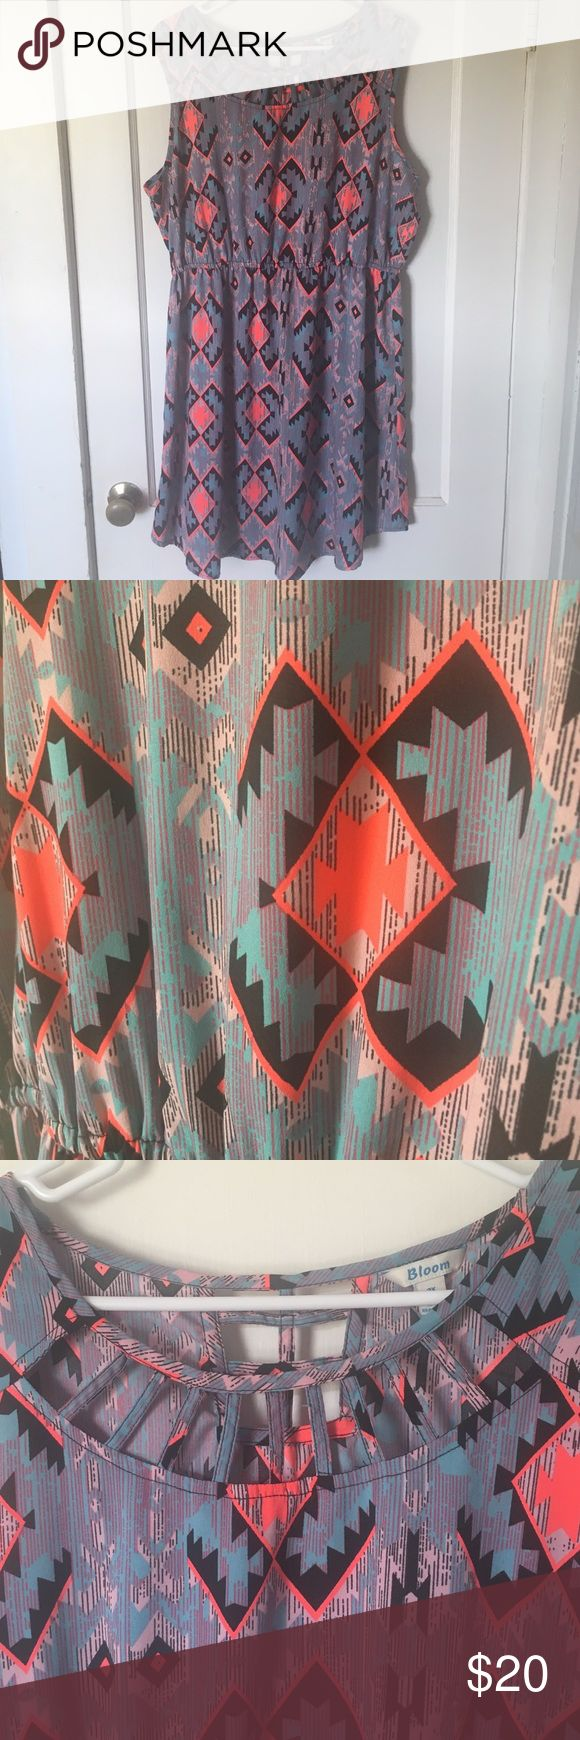 PLUS SIZE dress Aztec print plus size dress with cutouts at neckline. Elastic waist. Measurements while hanging length 38 inches. Waist unstretched 16 inches. Stretches to 24 inches. 100% polyester. bloom Dresses